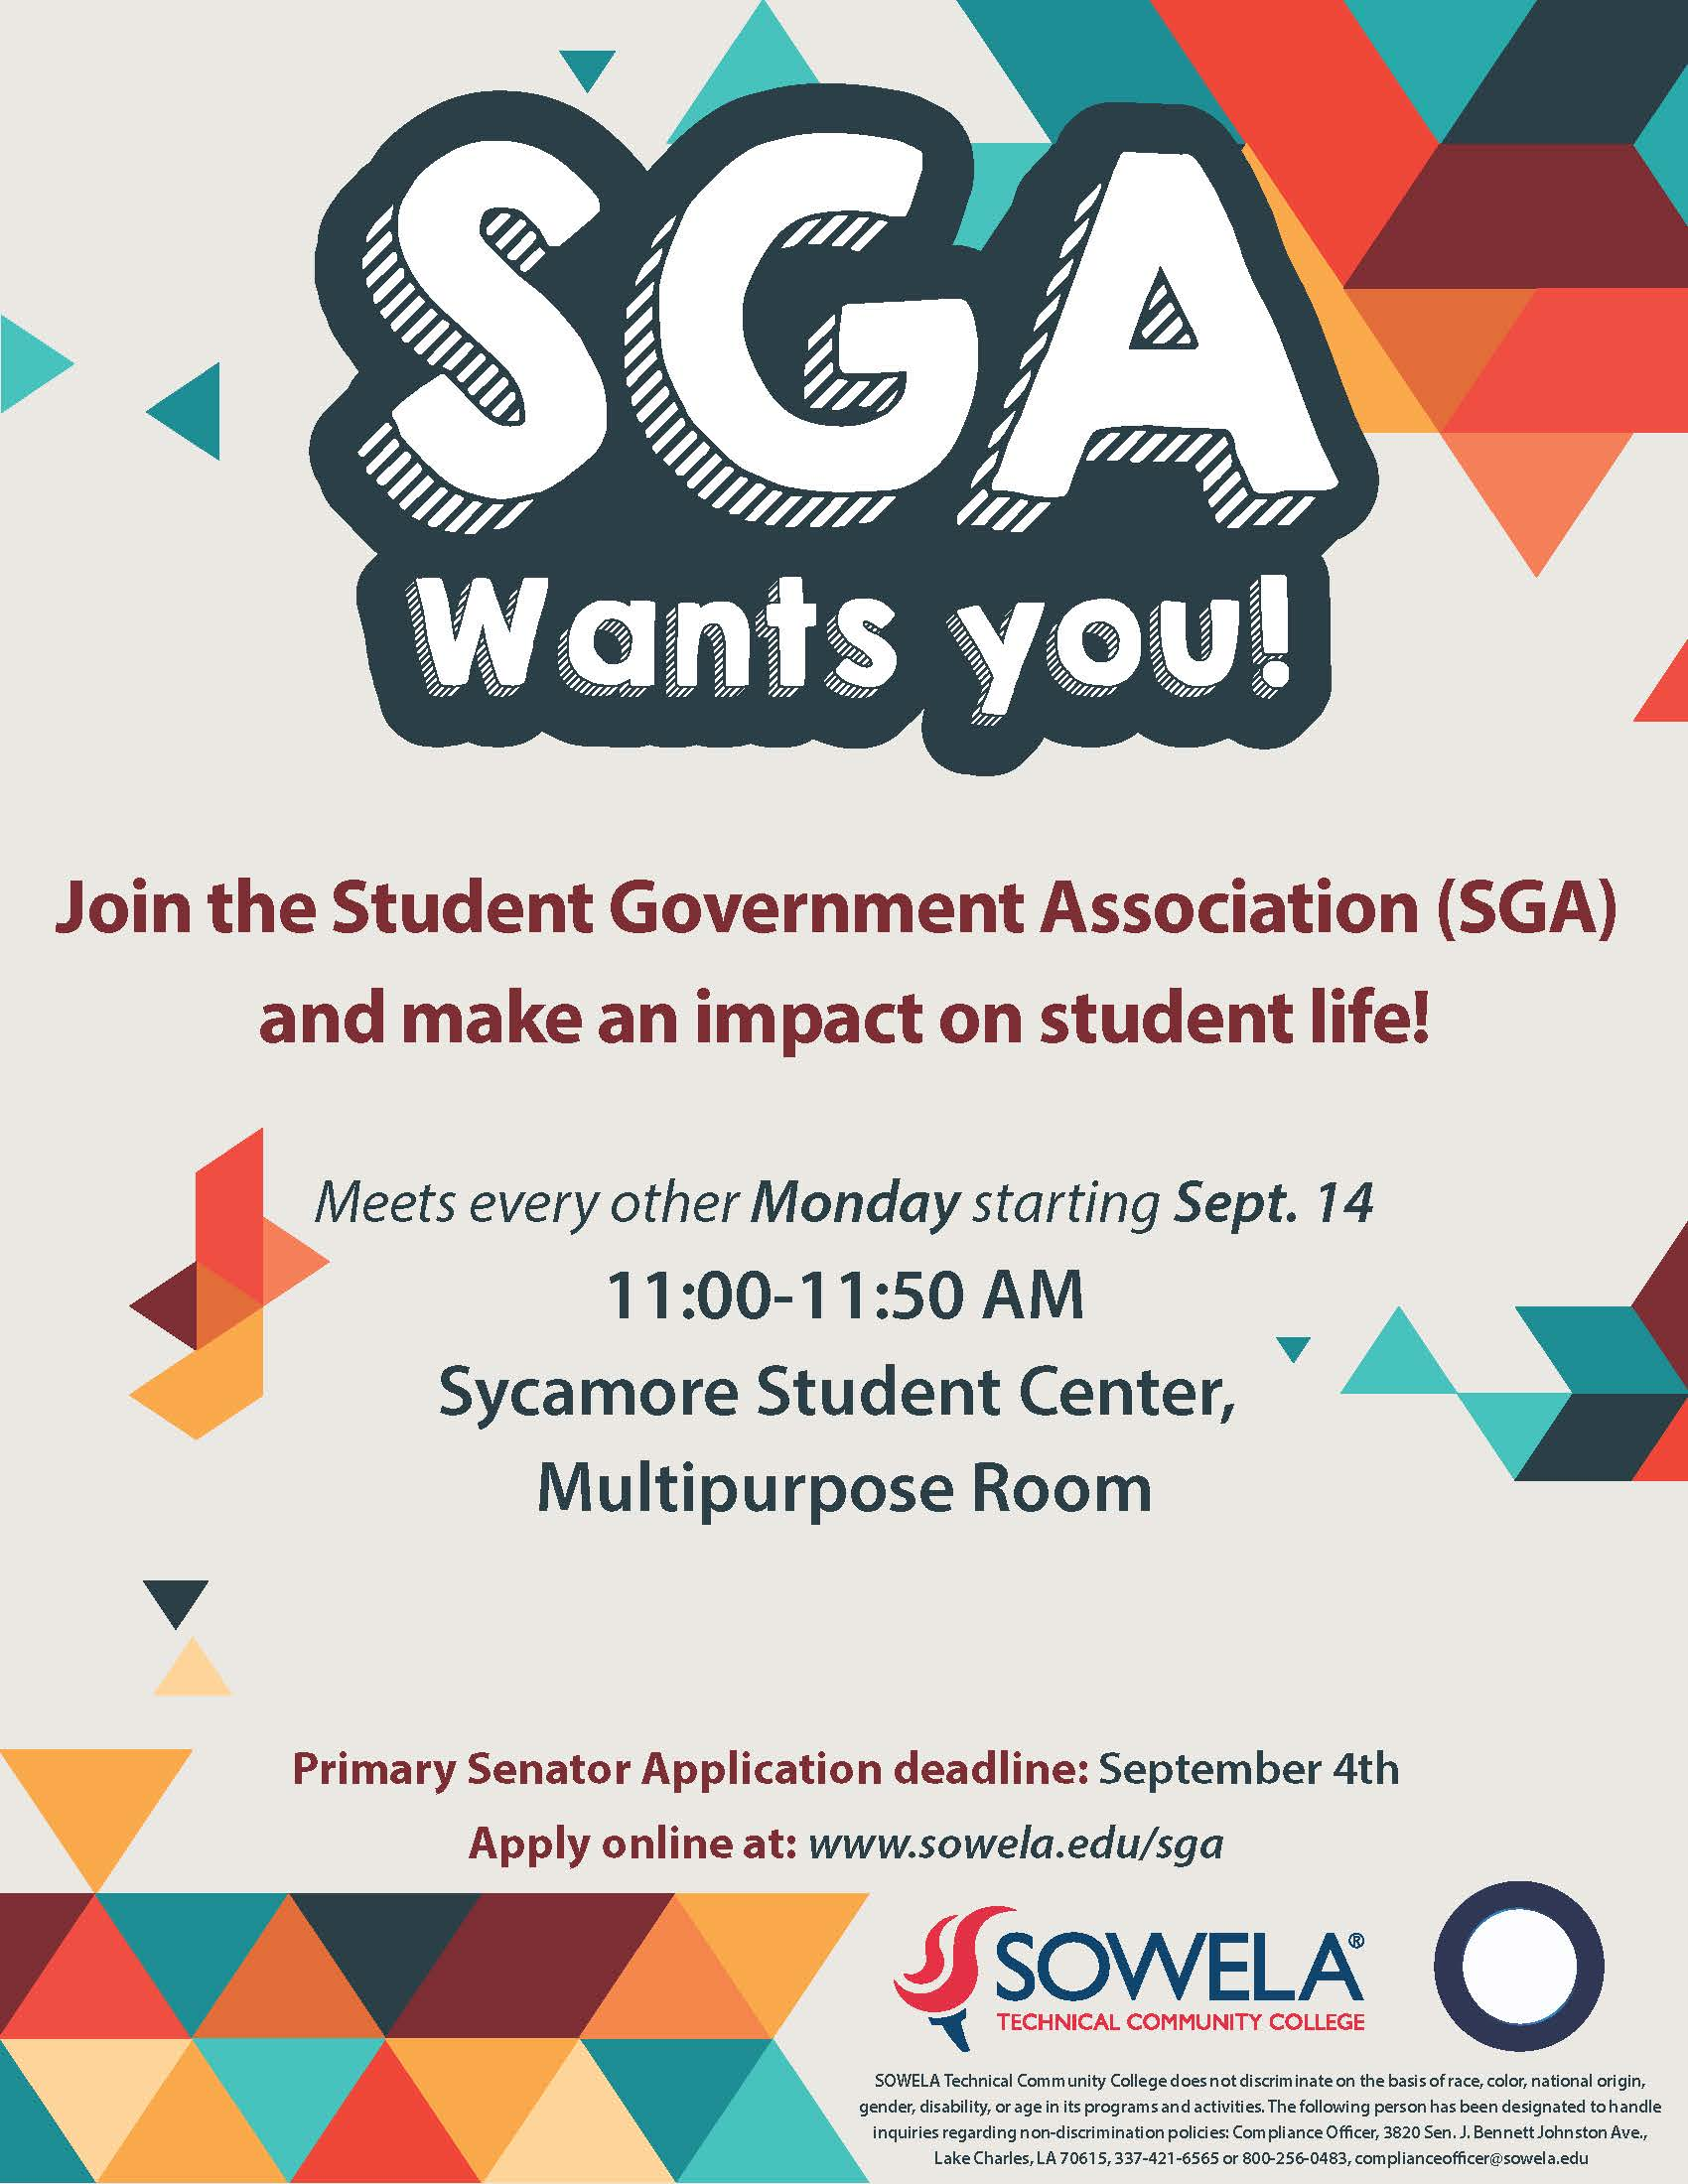 Student Government Association (SGA) Meeting @ Sycamore Student Center Multipurpose Room